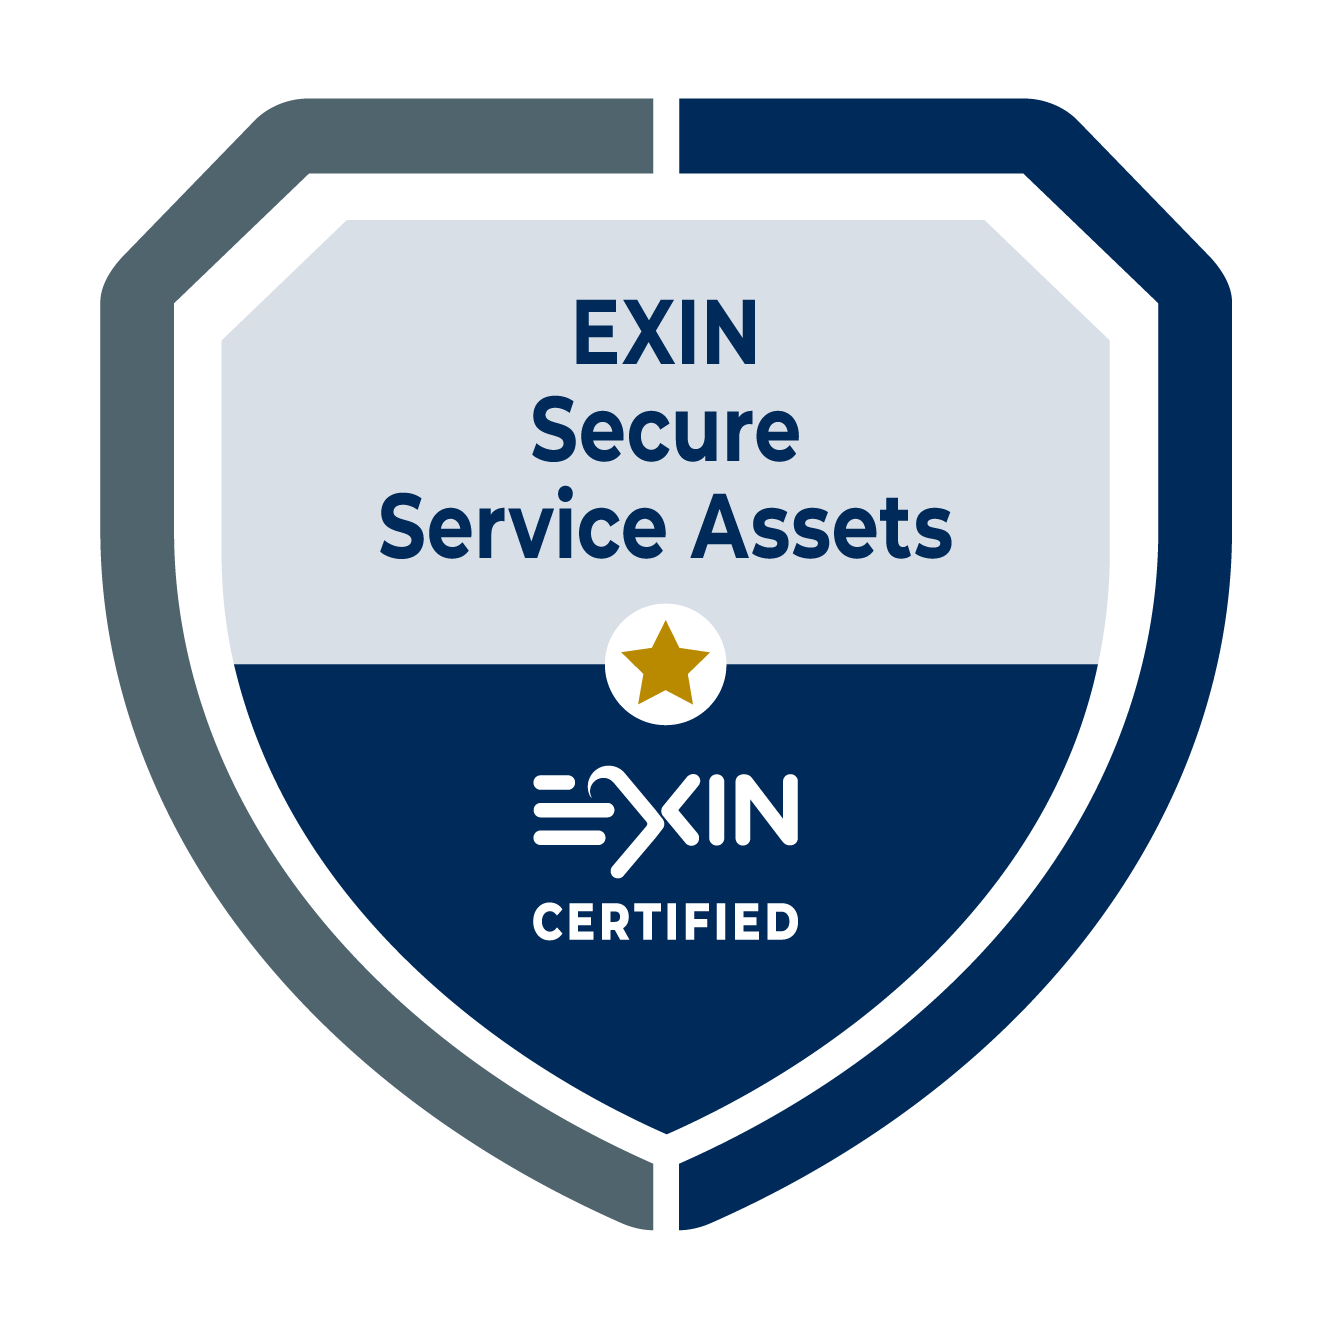 EXIN Secure Service Assets